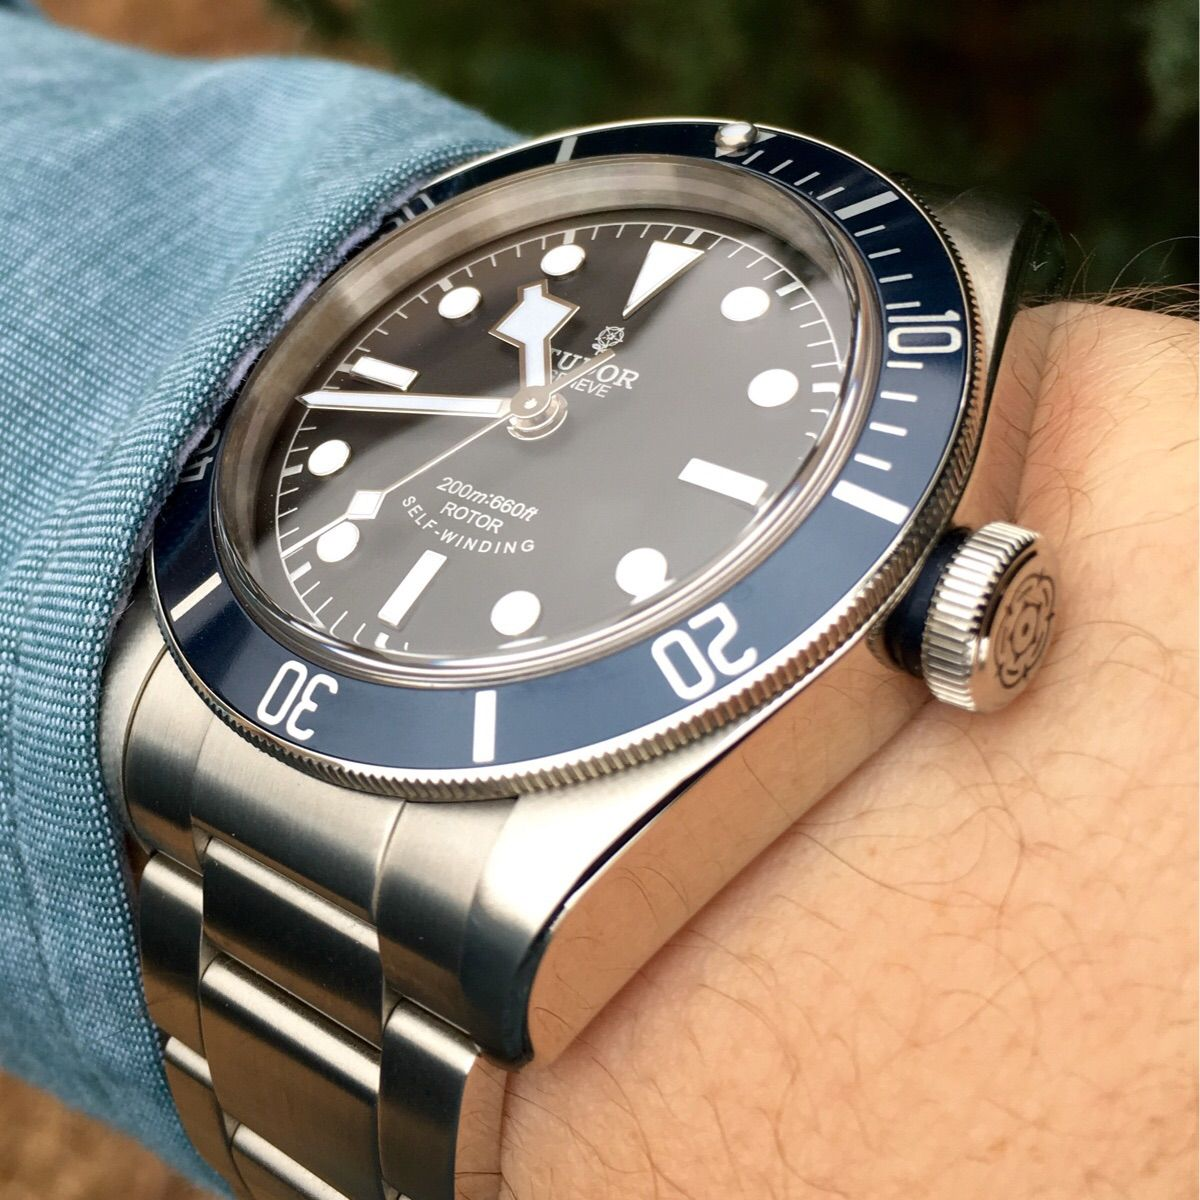 Tudor Black Bay Blue | Watches in 2019 | Watches, Tudor ...